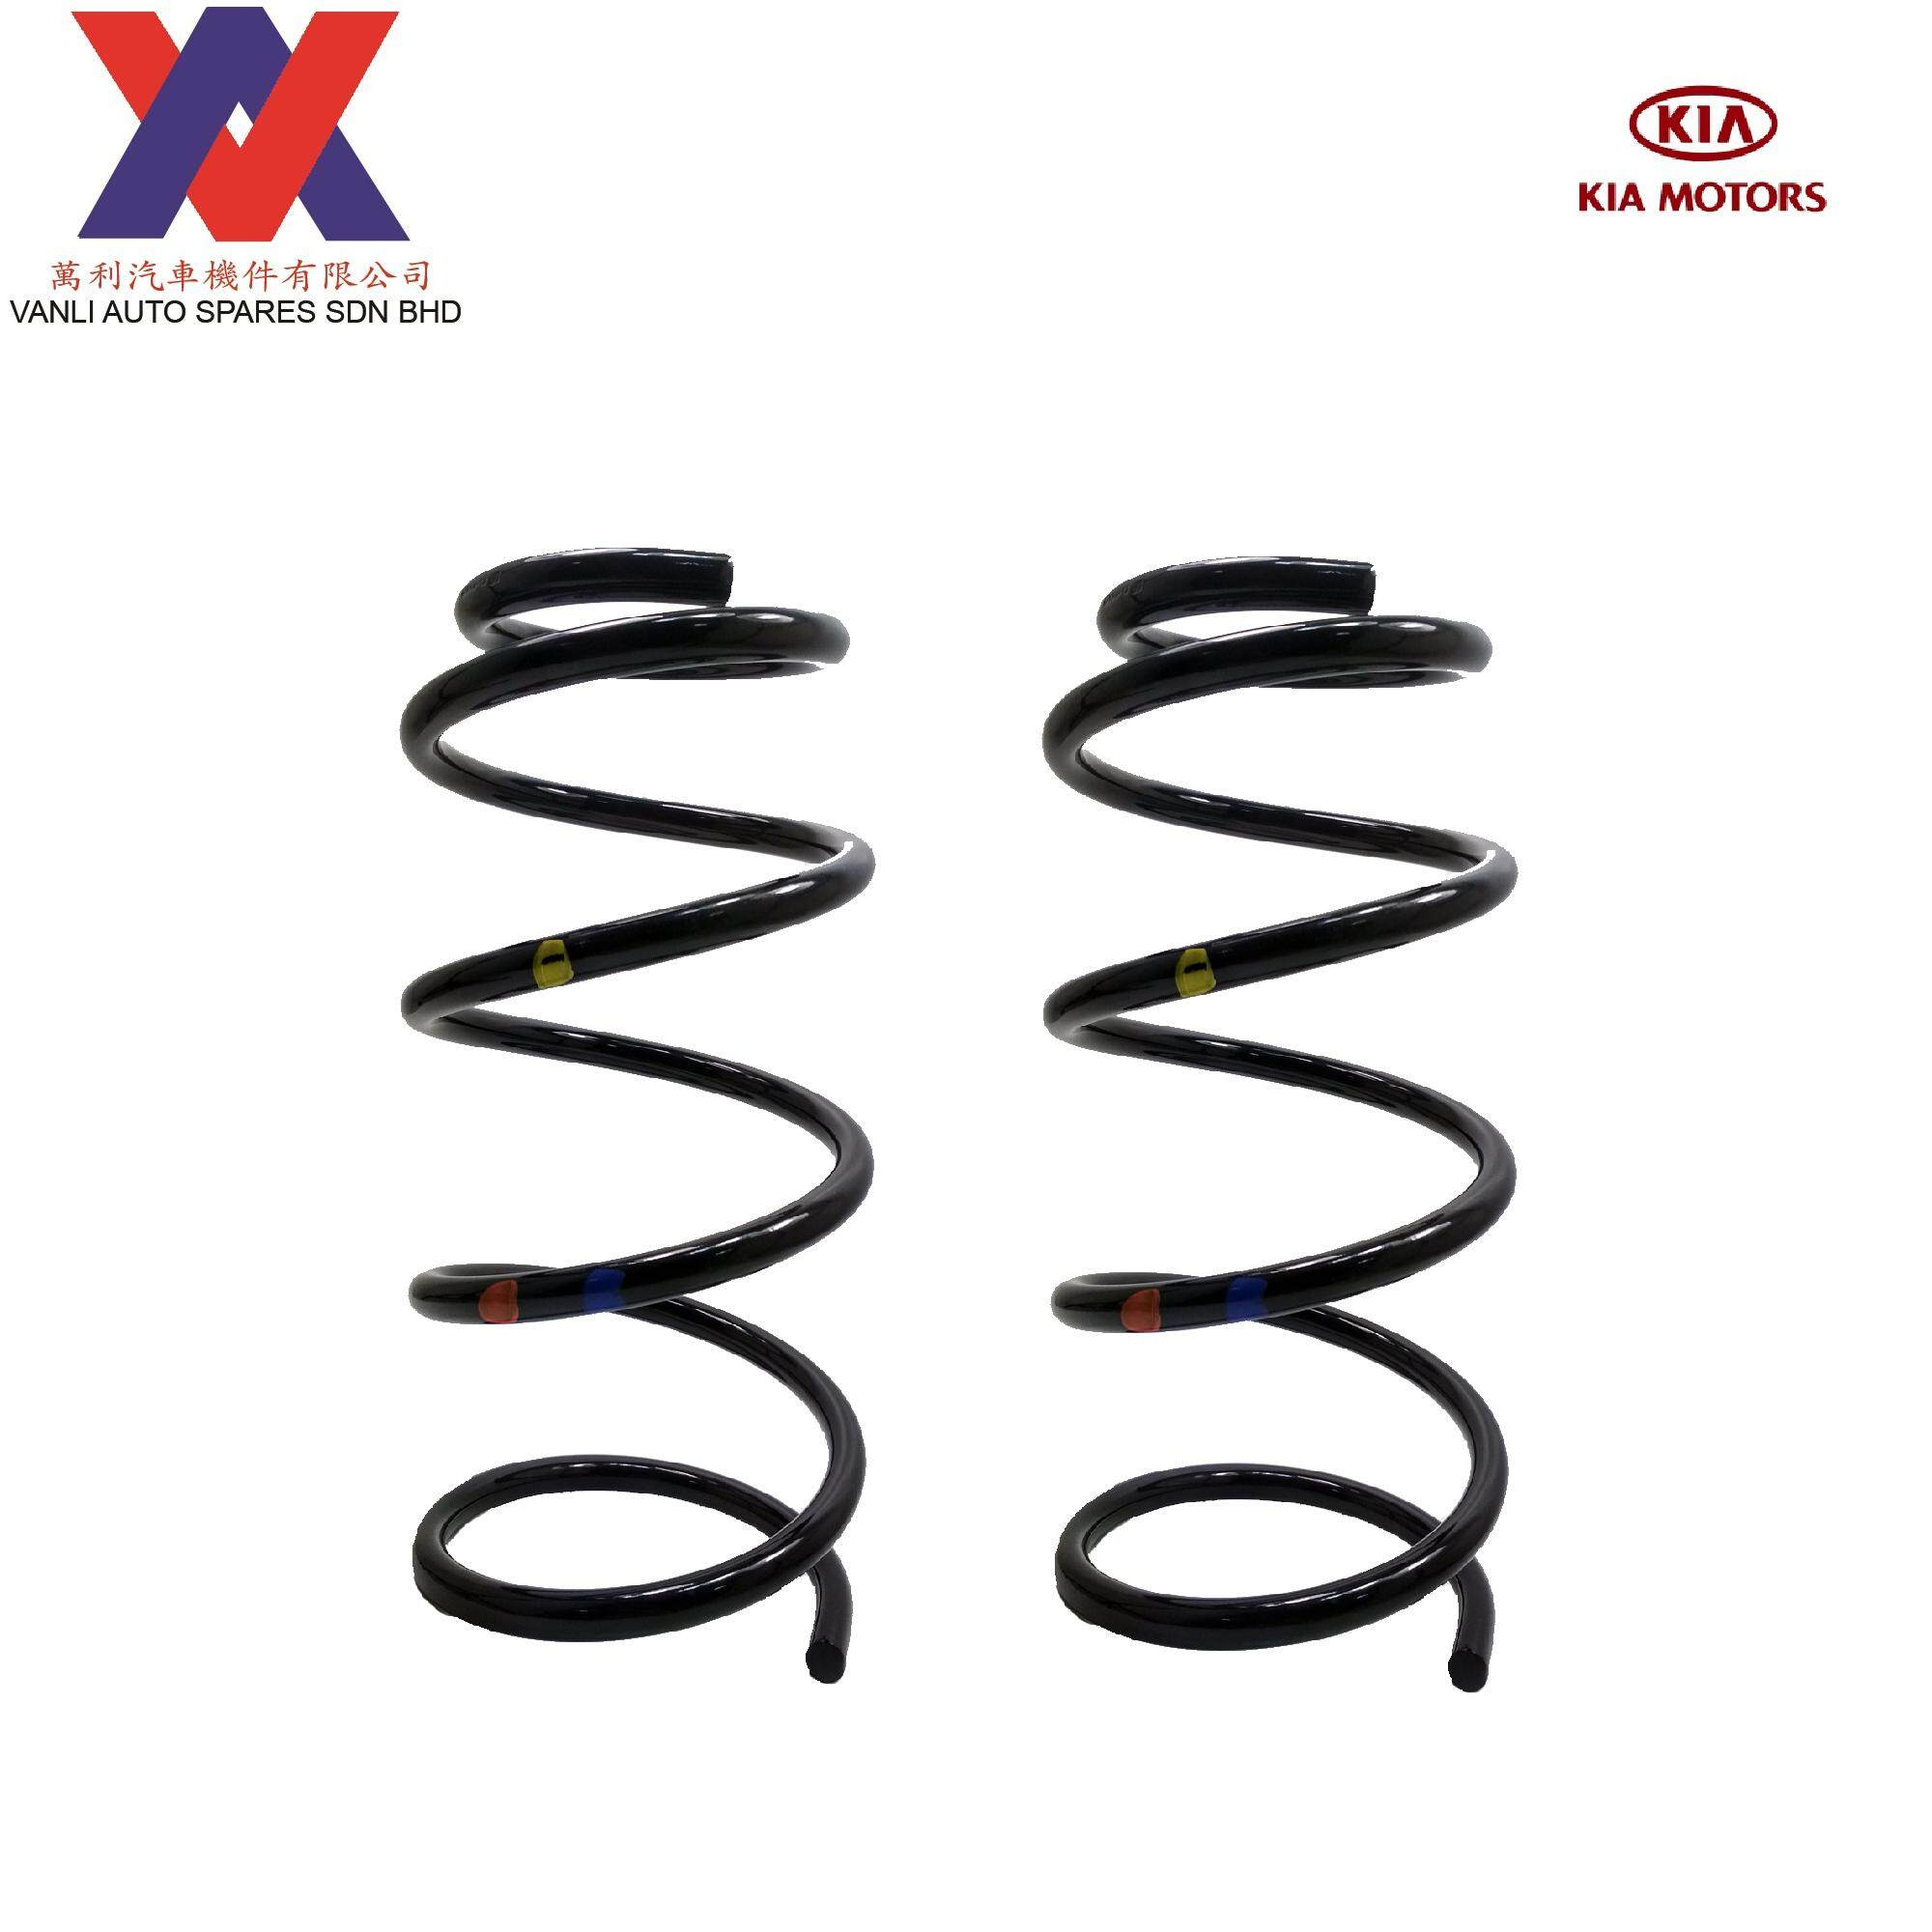 Kia Auto Parts Spares Price In Malaysia Best 2005 Sportage Fuel Filter Front Coil Spring For Rio 14cc 1 Pair R